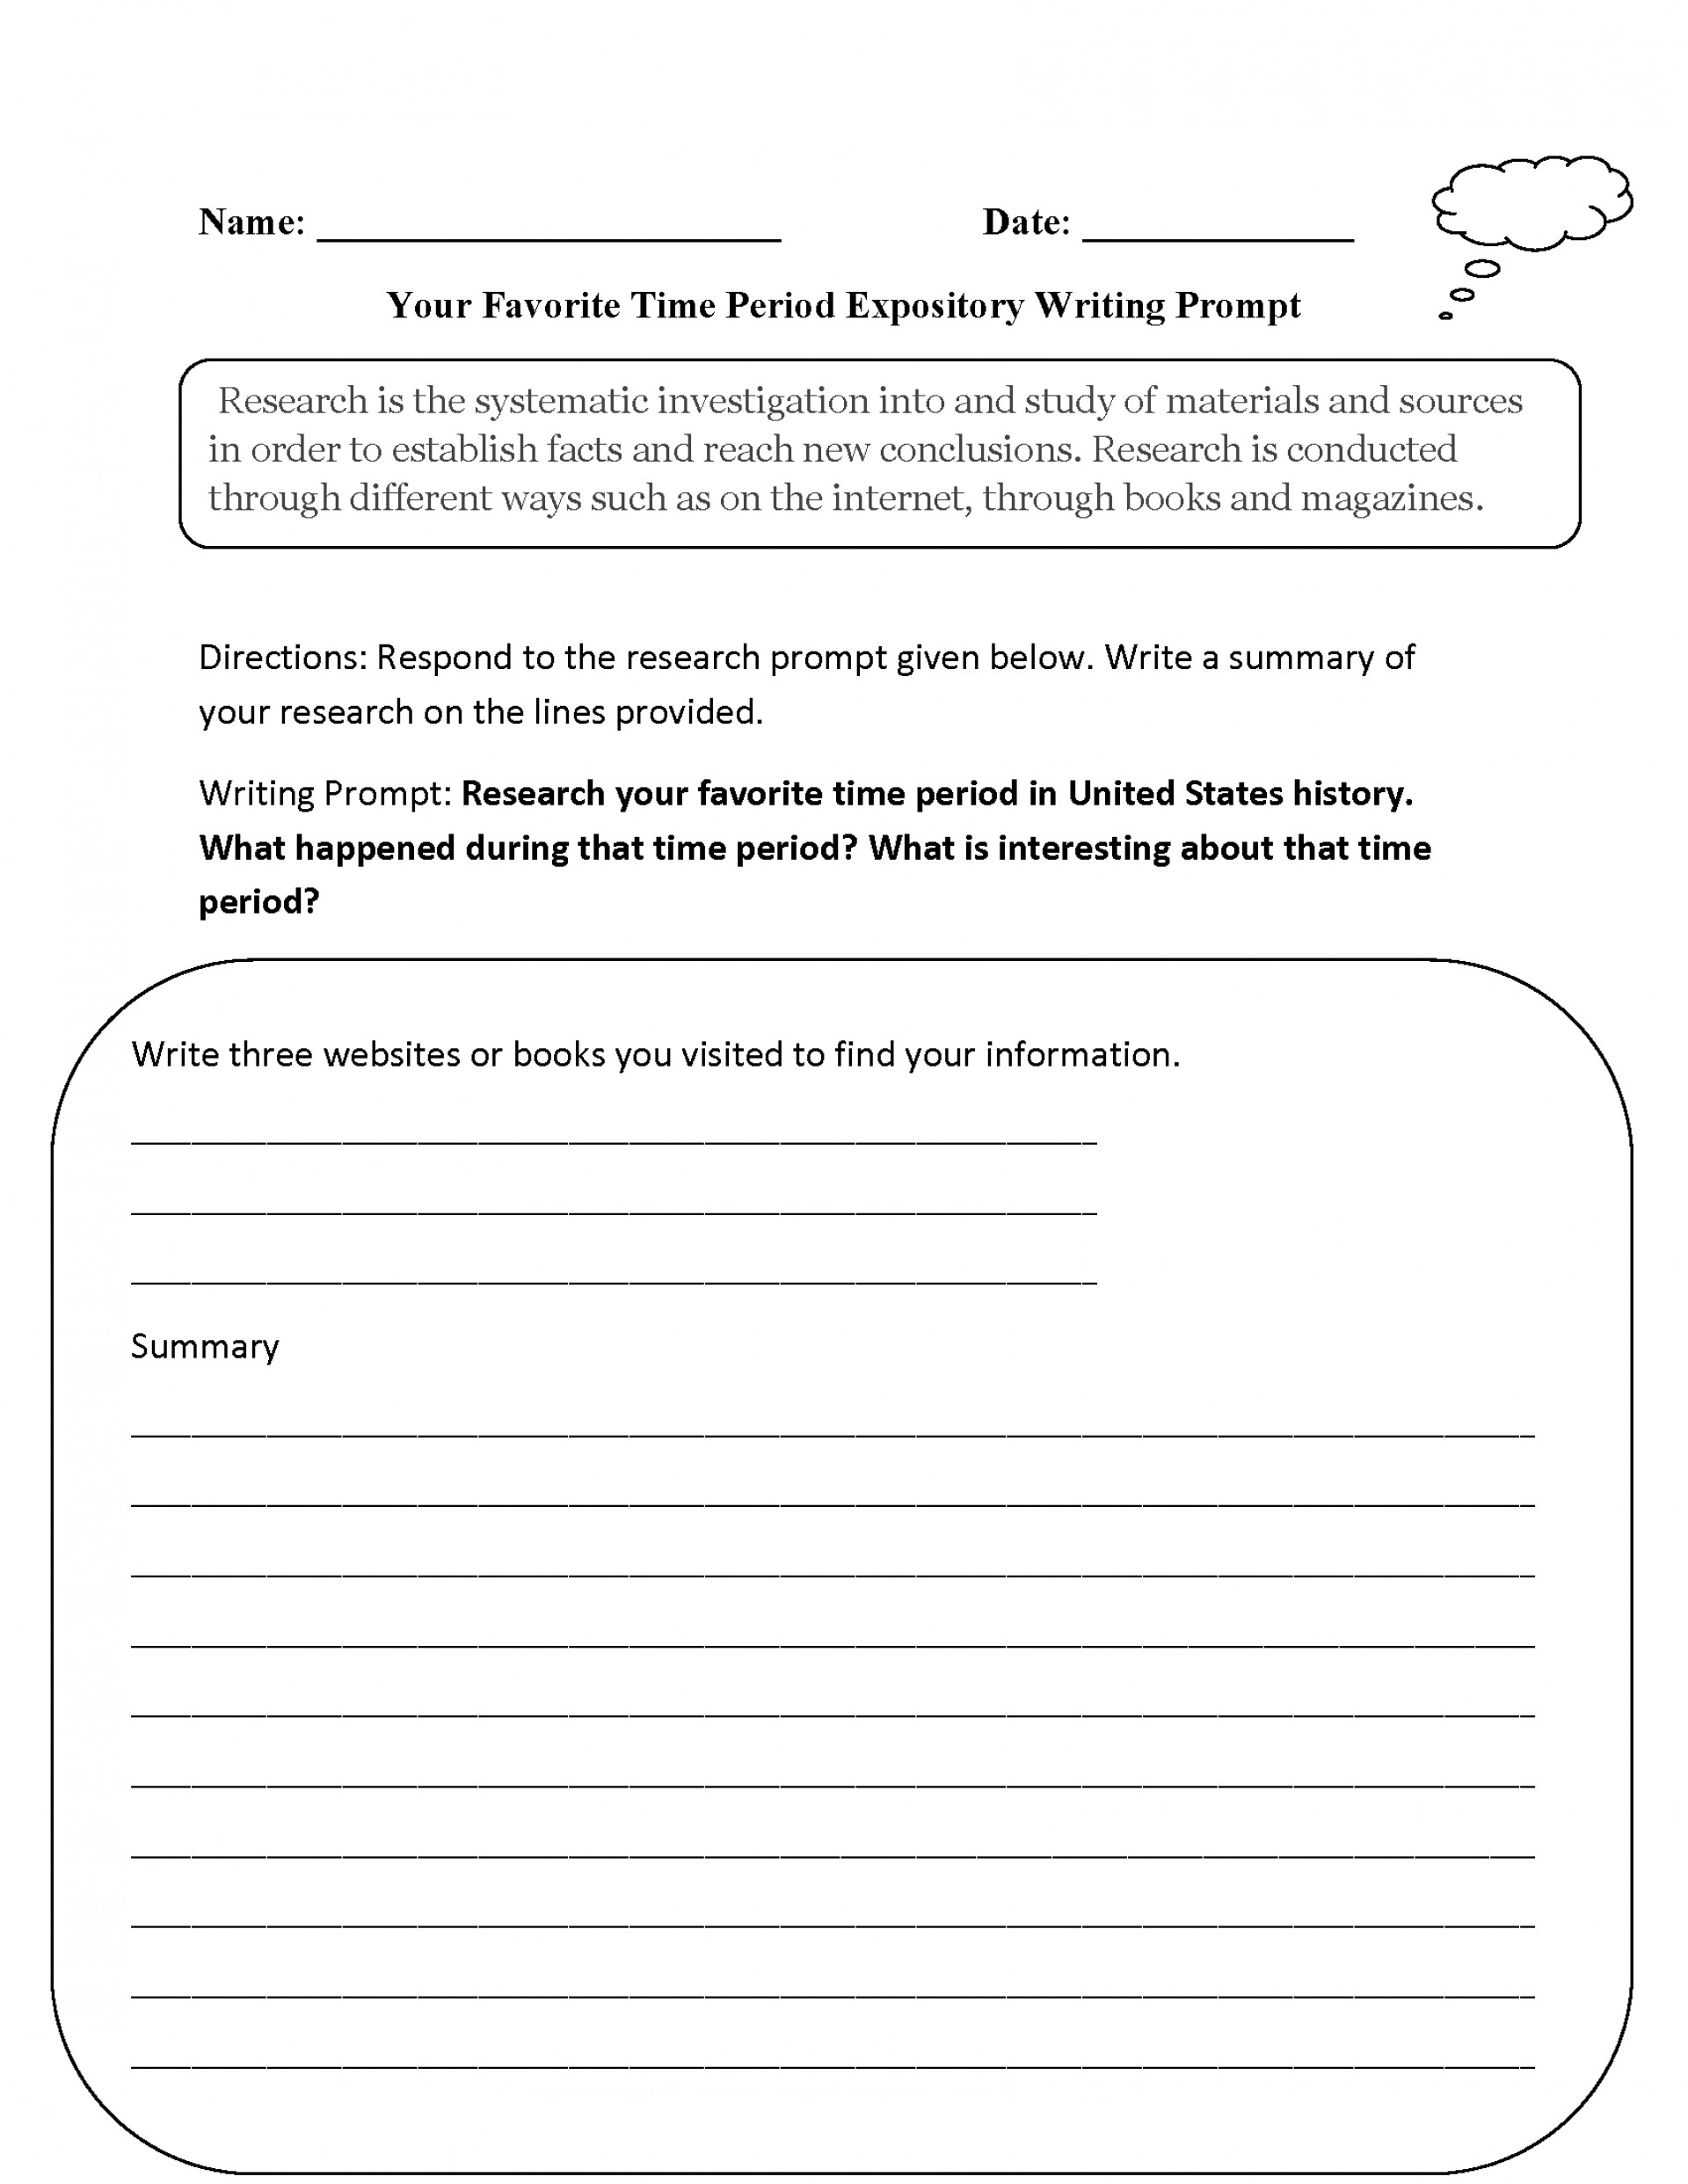 017 Informational Essay Prompts Informative Writing For College Students Favorite Time Period Expository P Elementary High School Middle 6th Grade 9th 5th Adults Unforgettable Topics With Articles Examples 1920